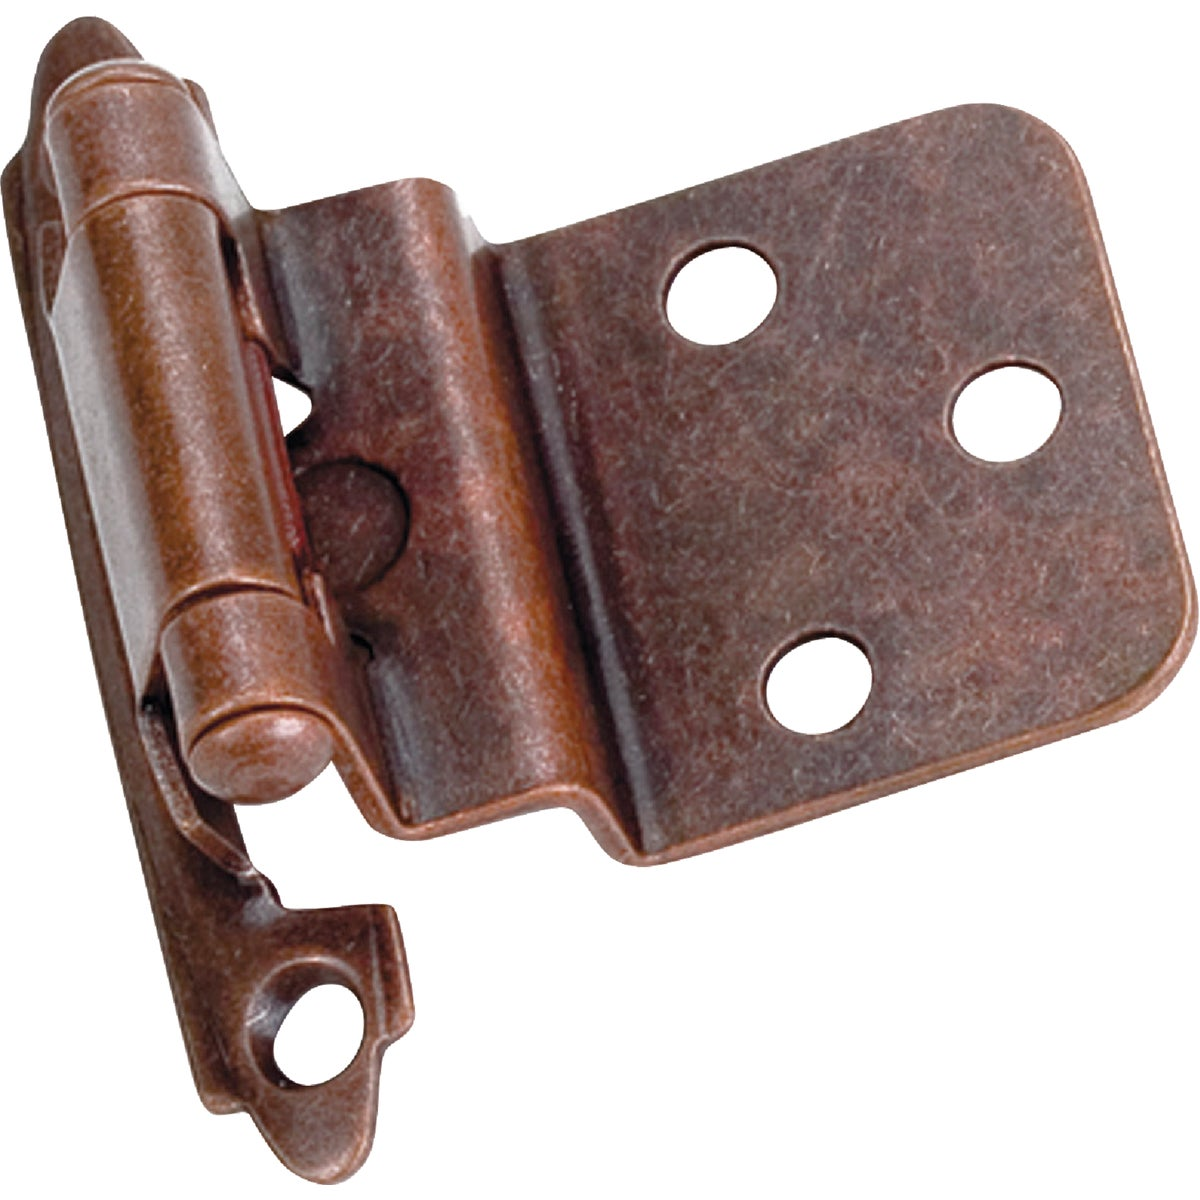 BRONZE VENETIAN HINGE - 28677 by Laurey Co